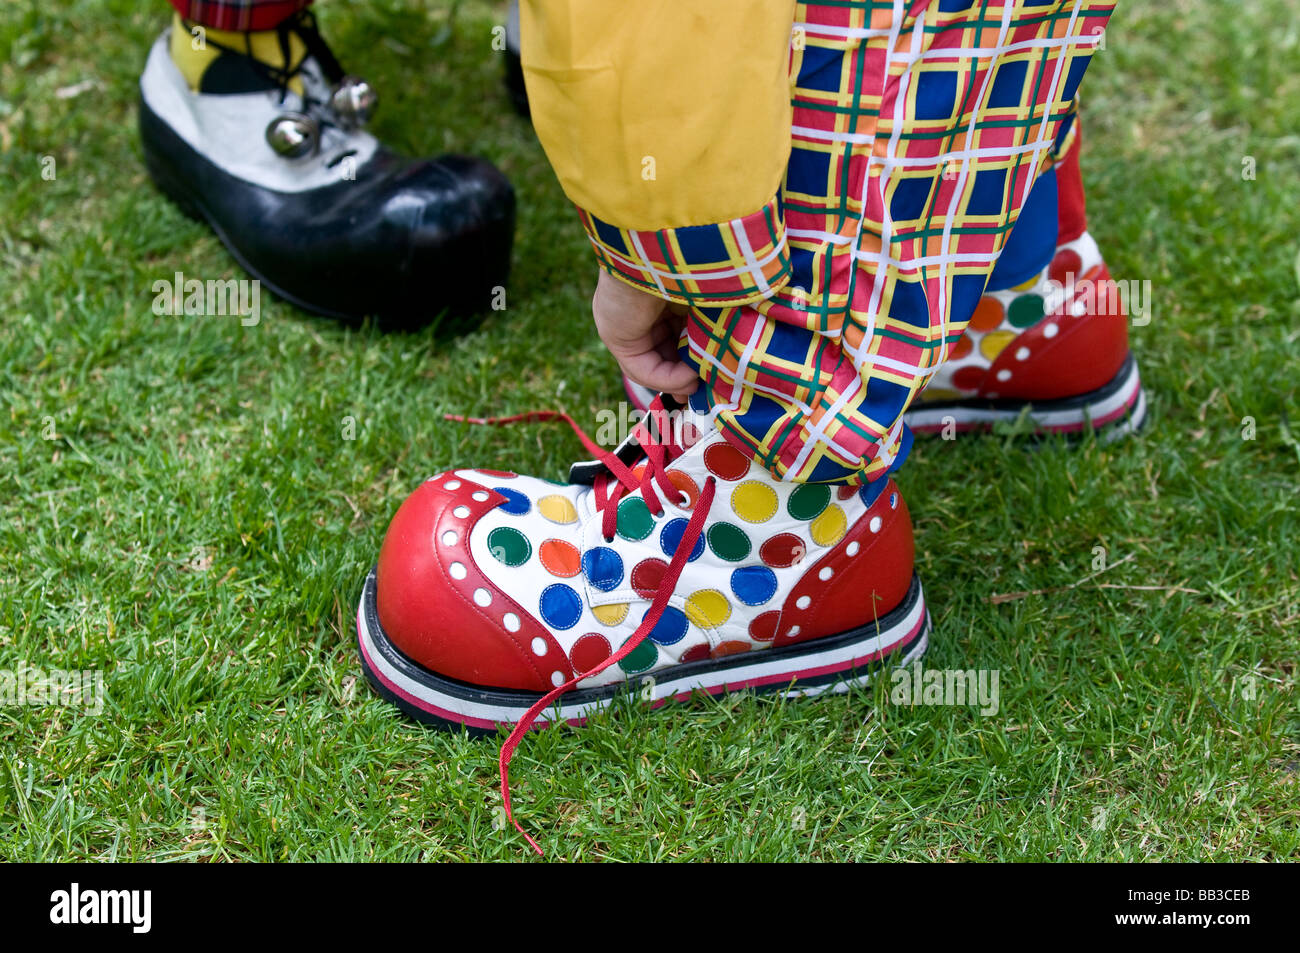 Large clown boots. - Stock Image